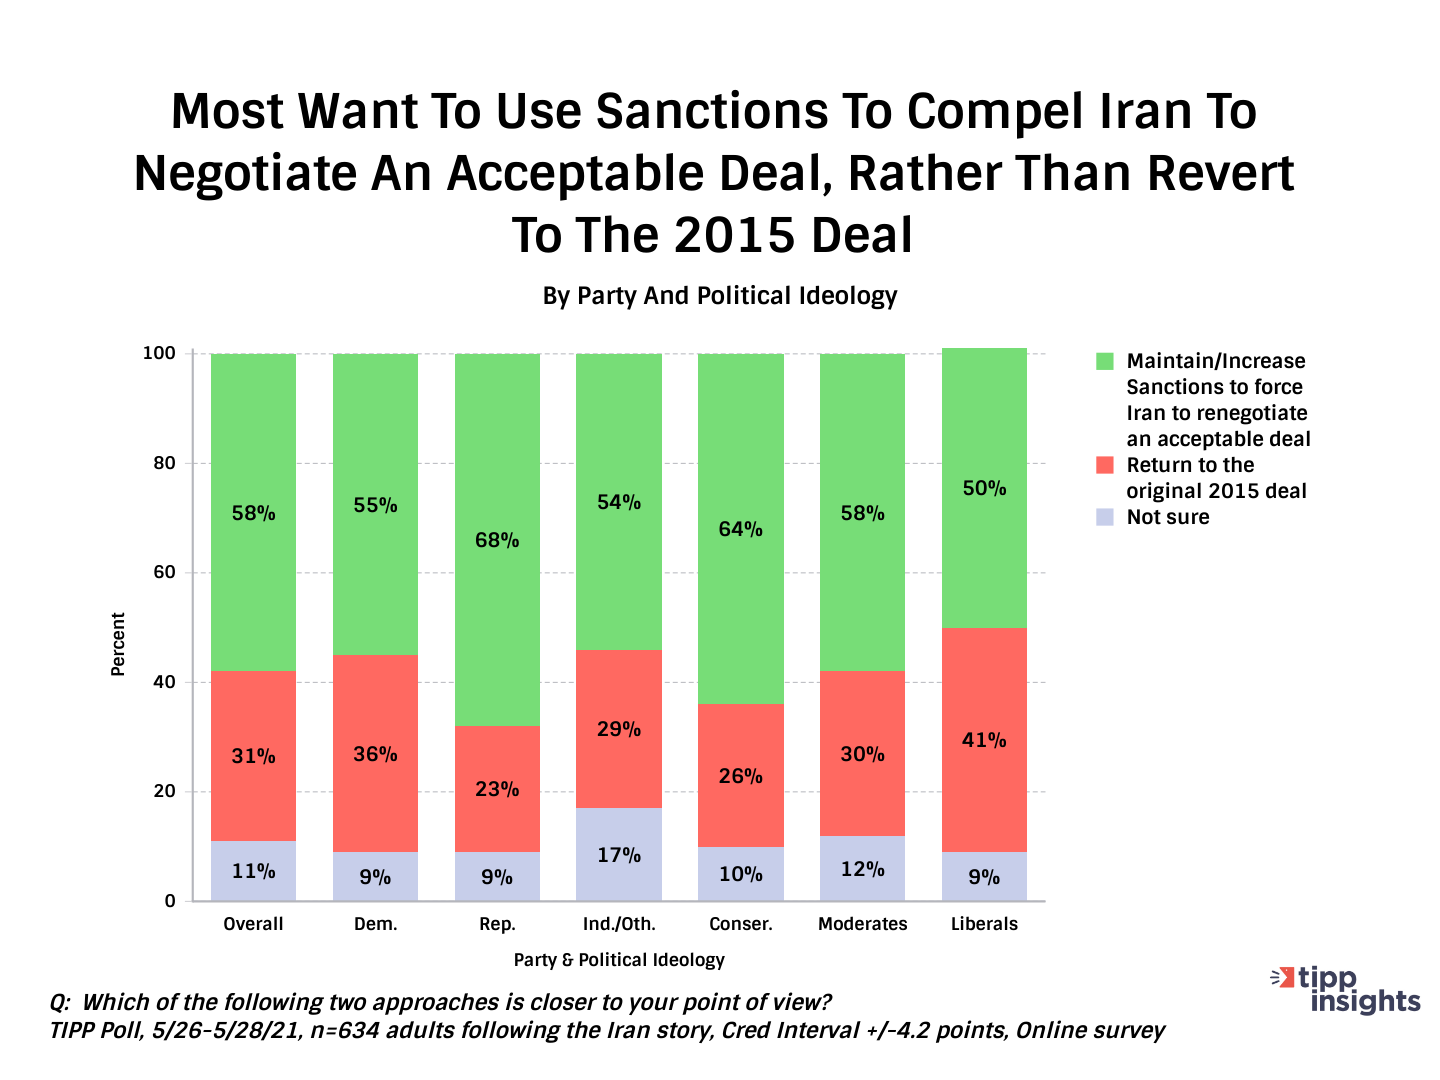 TIPP Poll Most Americans Want To Use Sanctions To Compel Iran To Negotiate In Iran Nuclear Deal (JCPOA)